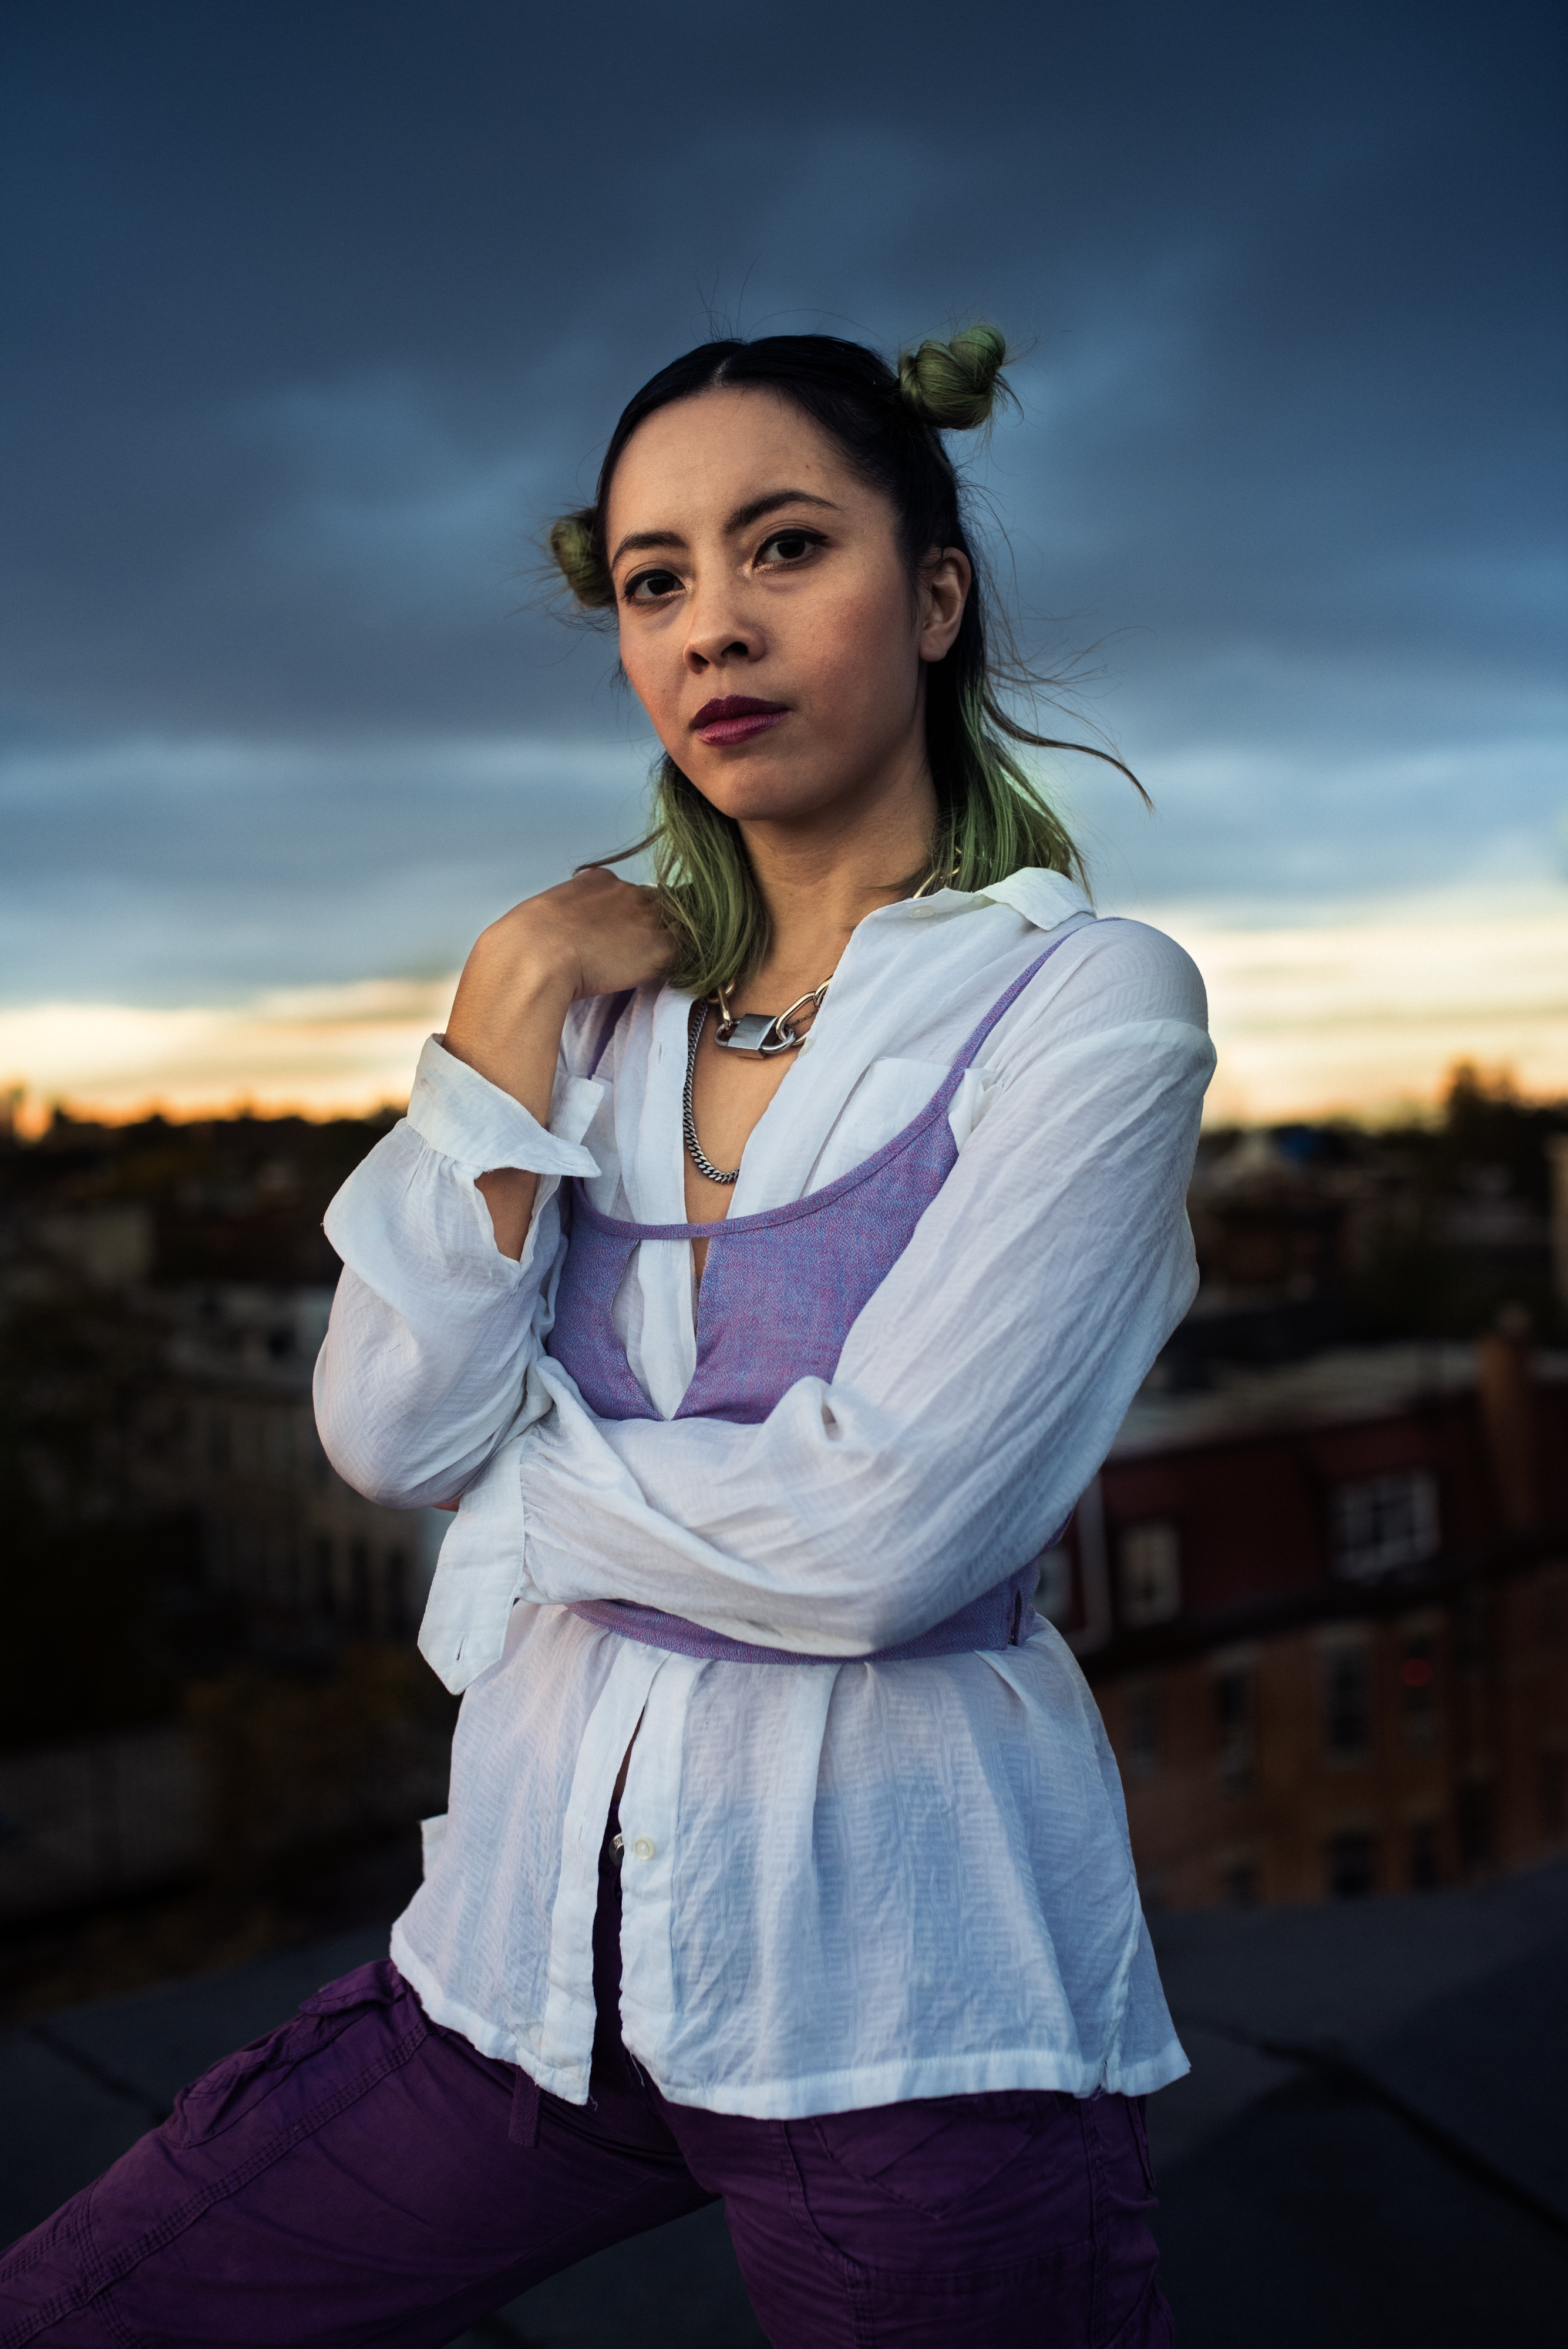 A woman with a white button-down shirt layered under a purple cropped camisole stands and looks directly at the camera